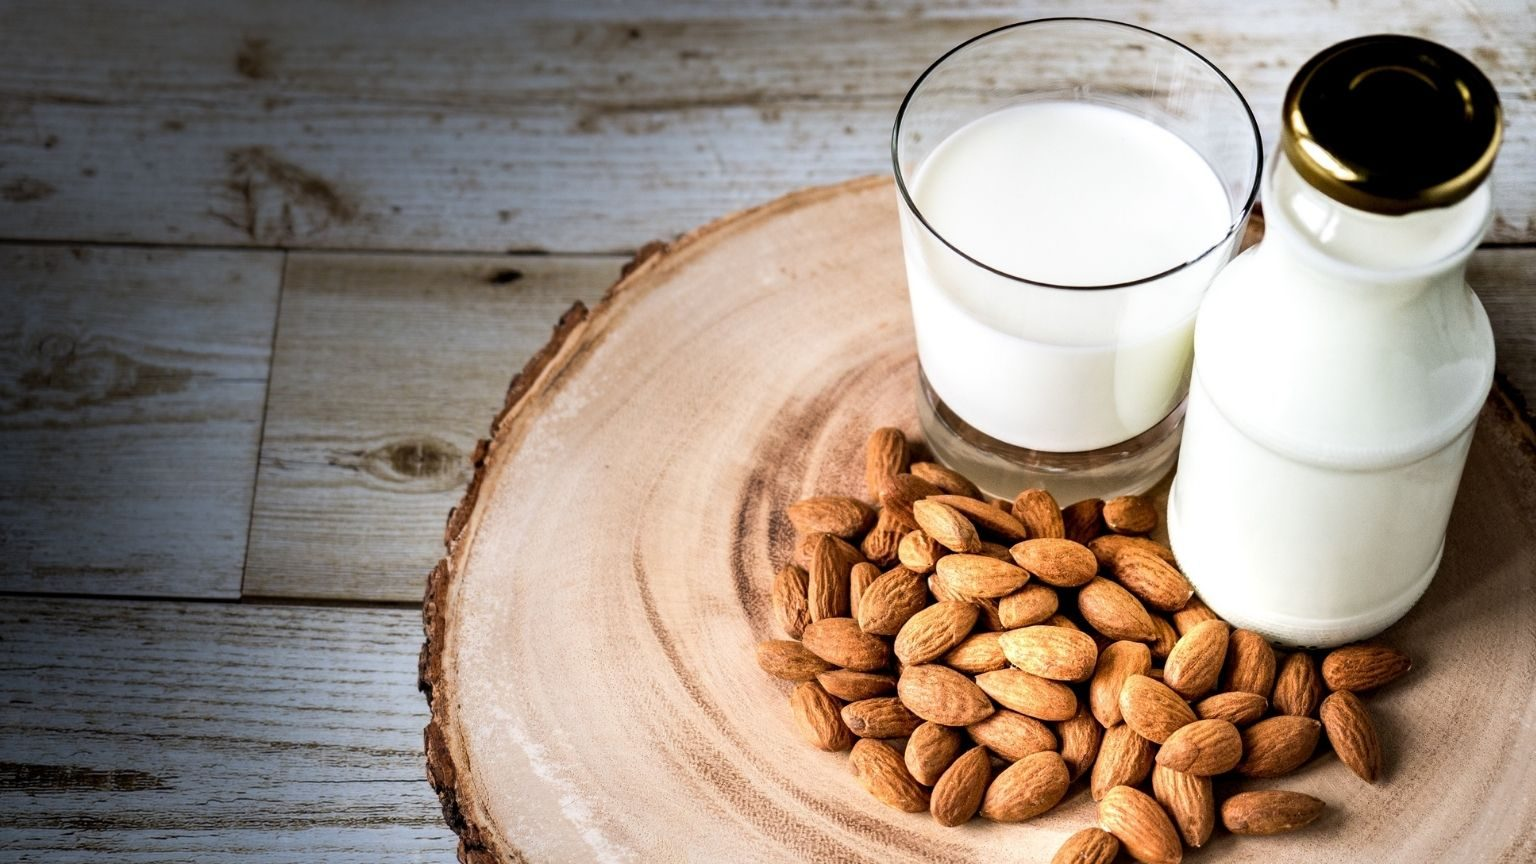 Almonds With Milk On Table